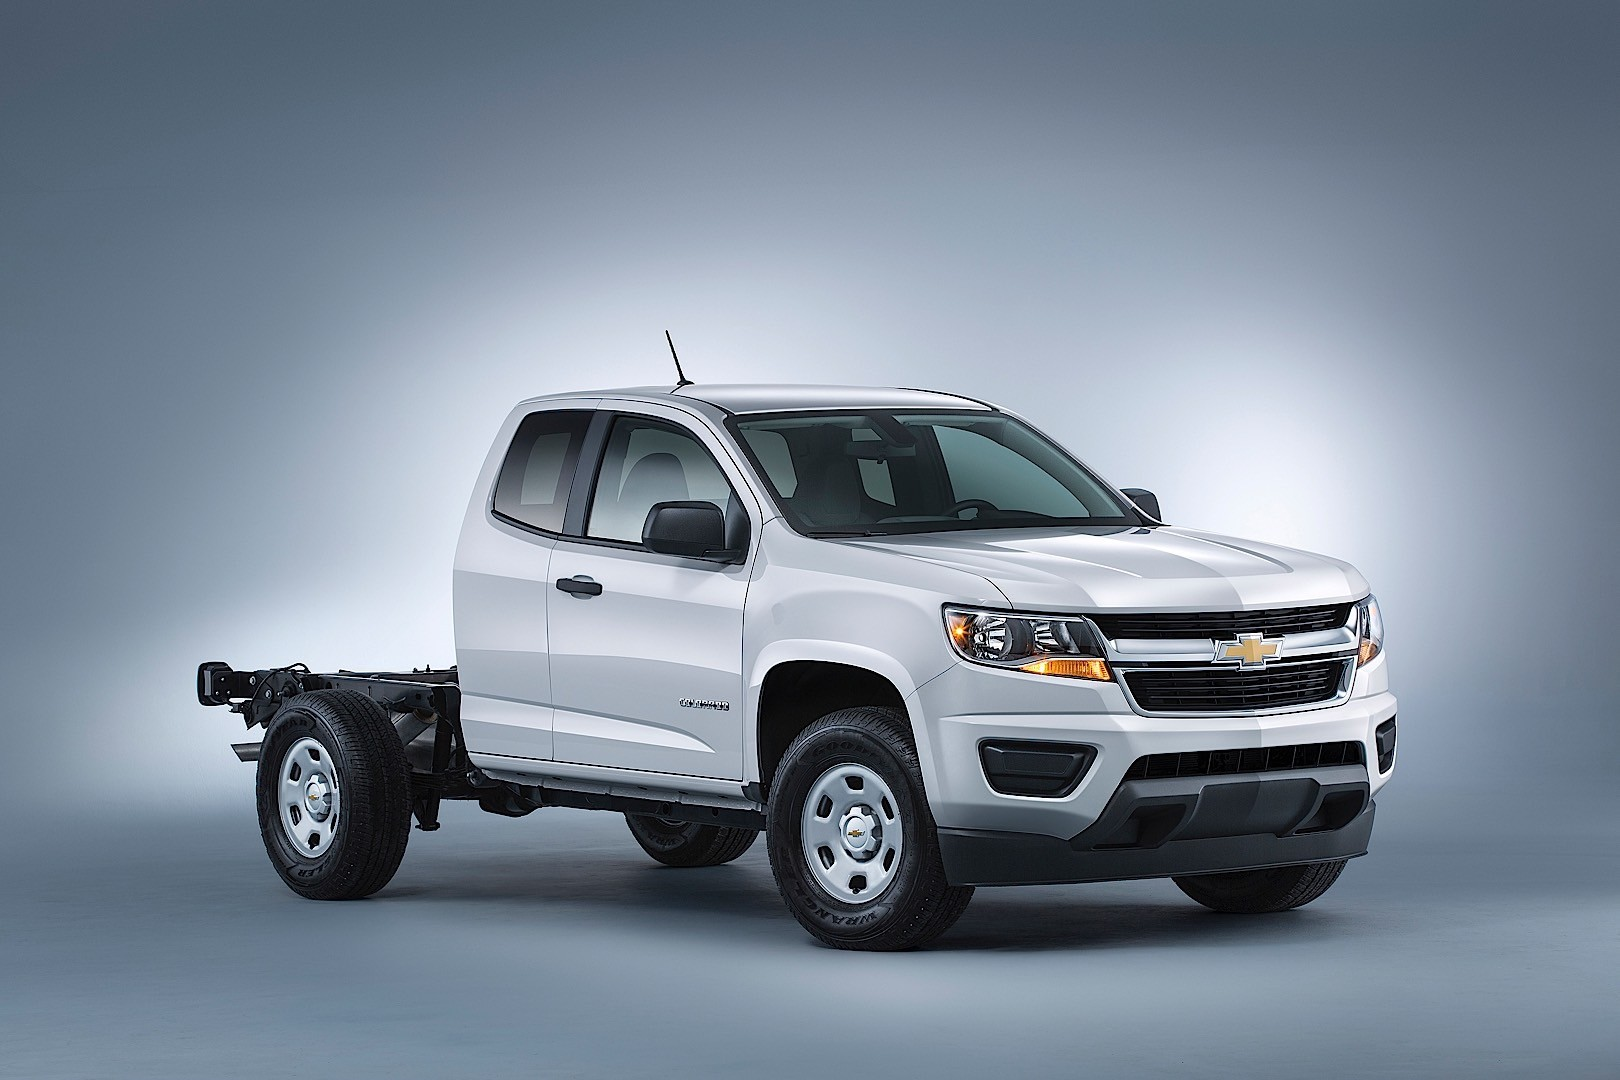 chevrolet colorado extended cab specs 2015 2016 2017 2018 autoevolution. Black Bedroom Furniture Sets. Home Design Ideas